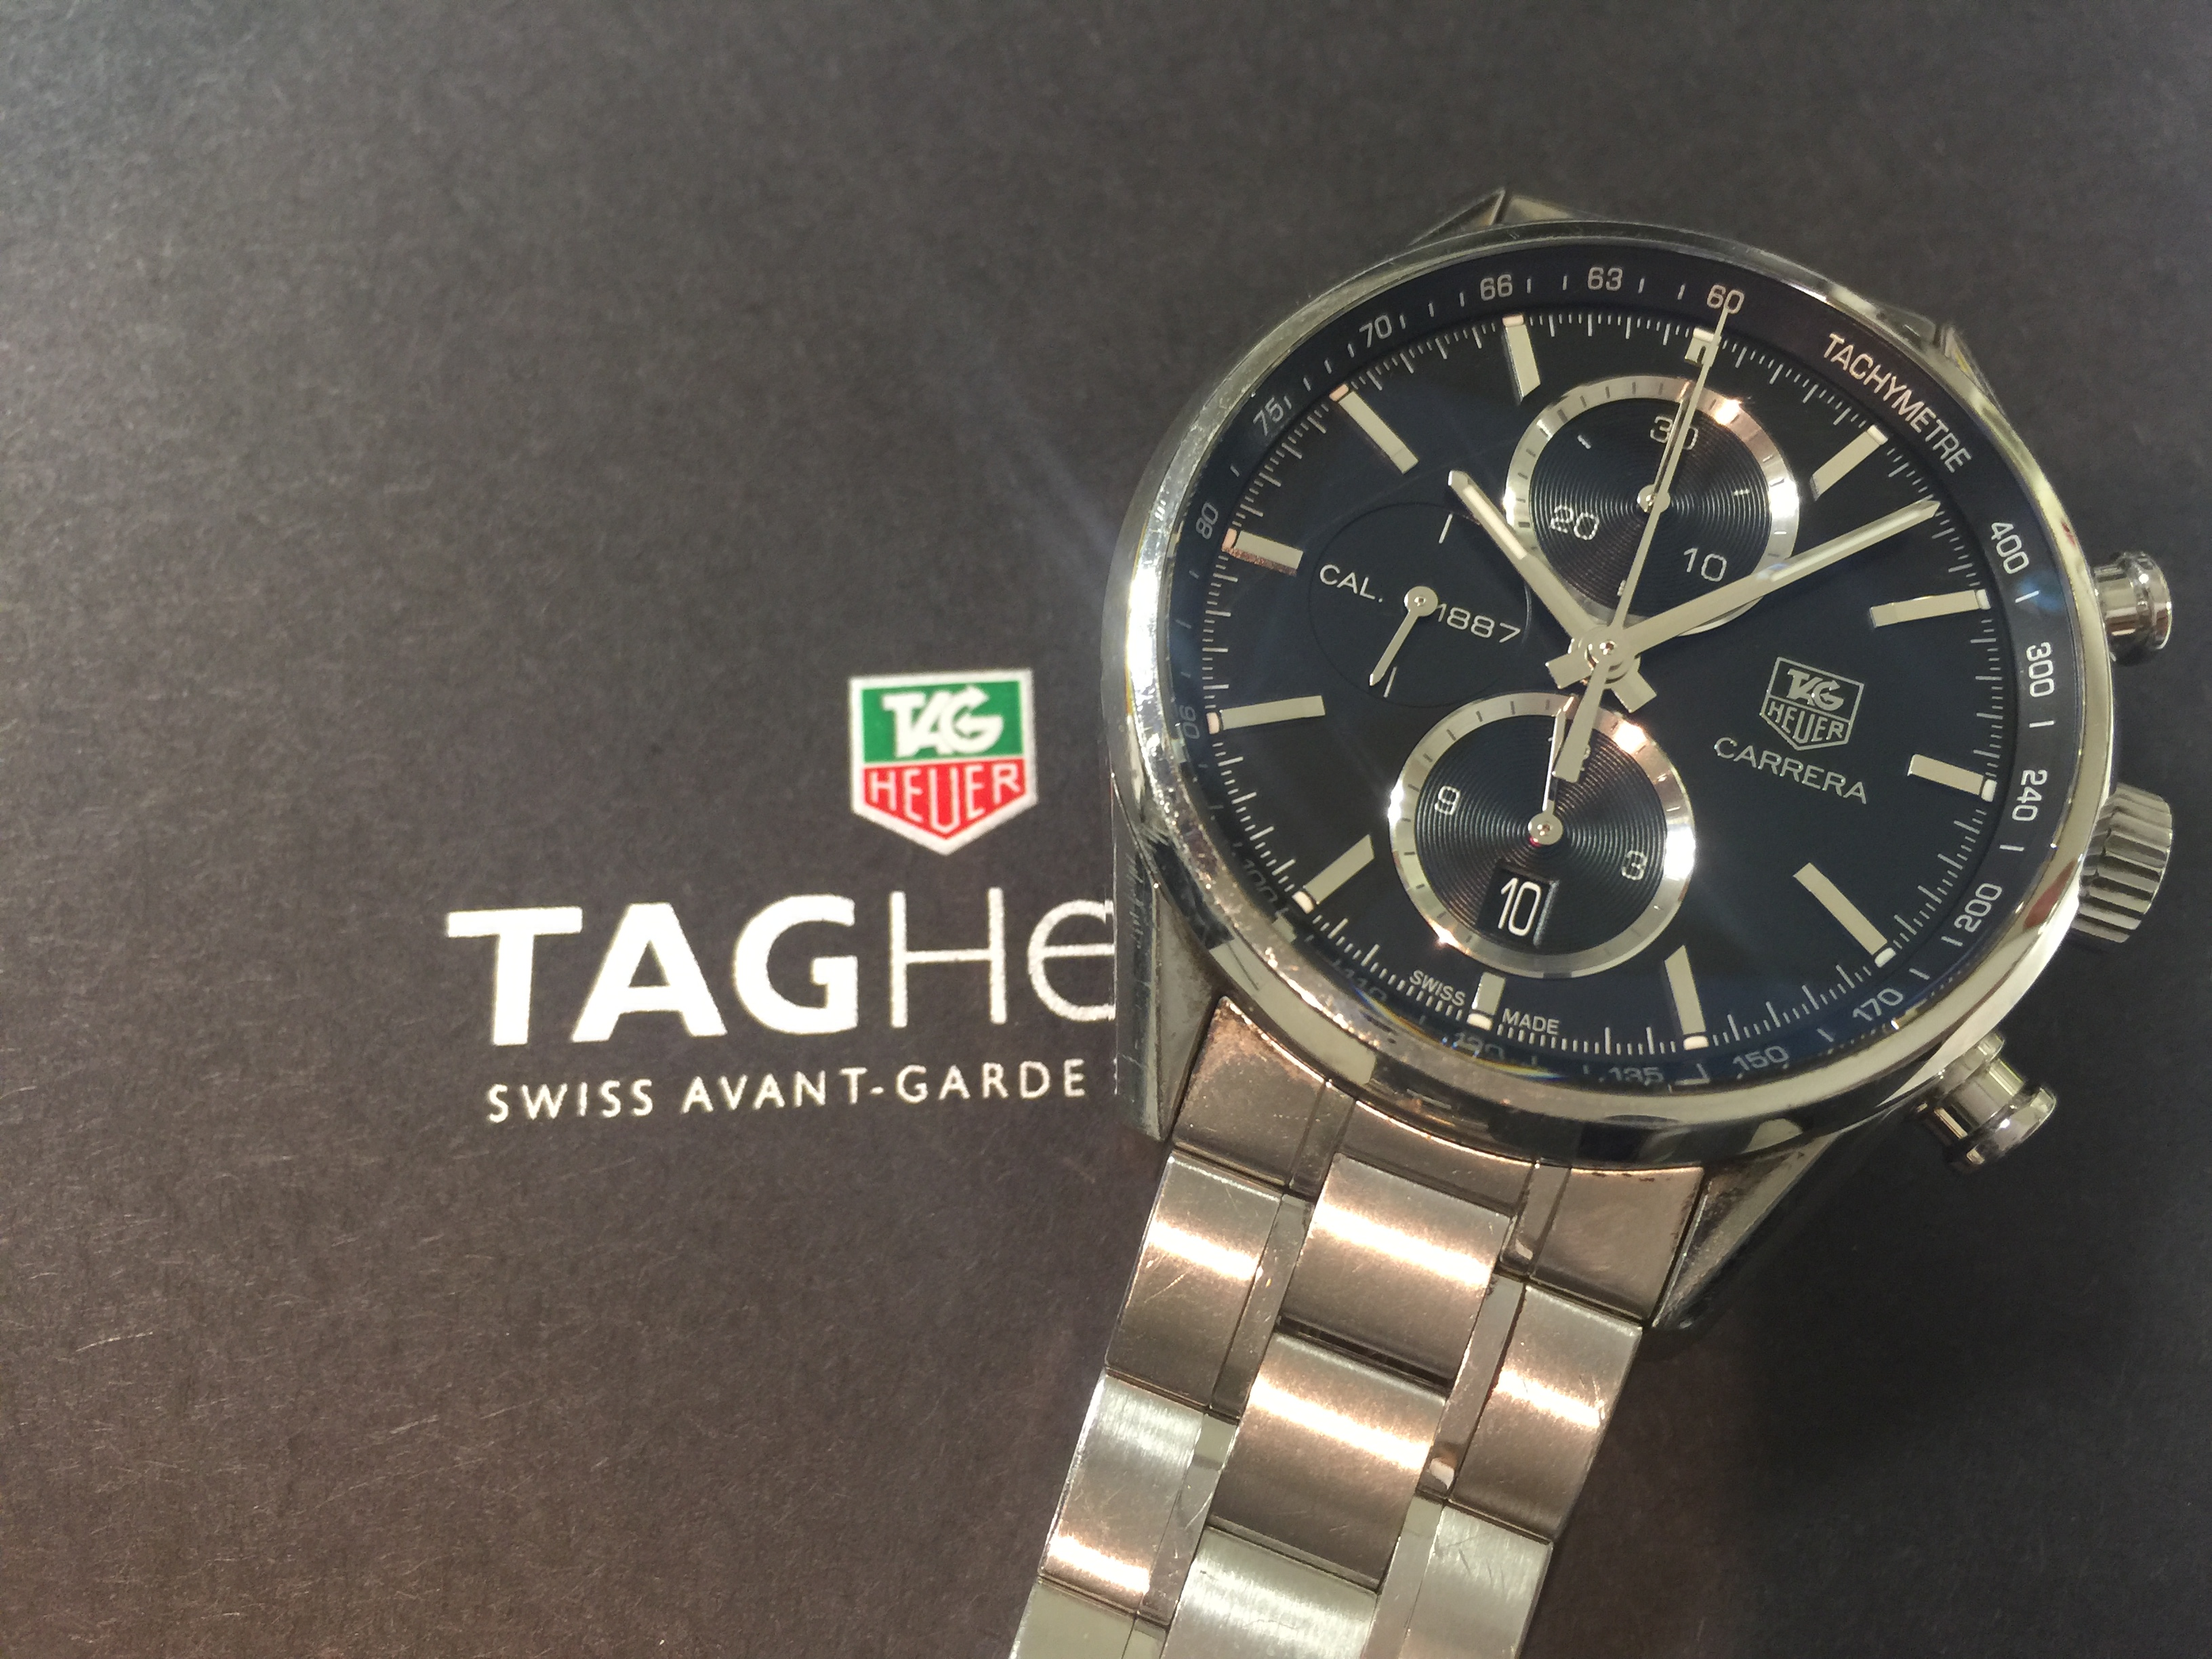 official photos 70037 2a028 タグホイヤー TAG HEUER カレラ1887 クロノグラフ CAR2110 ...